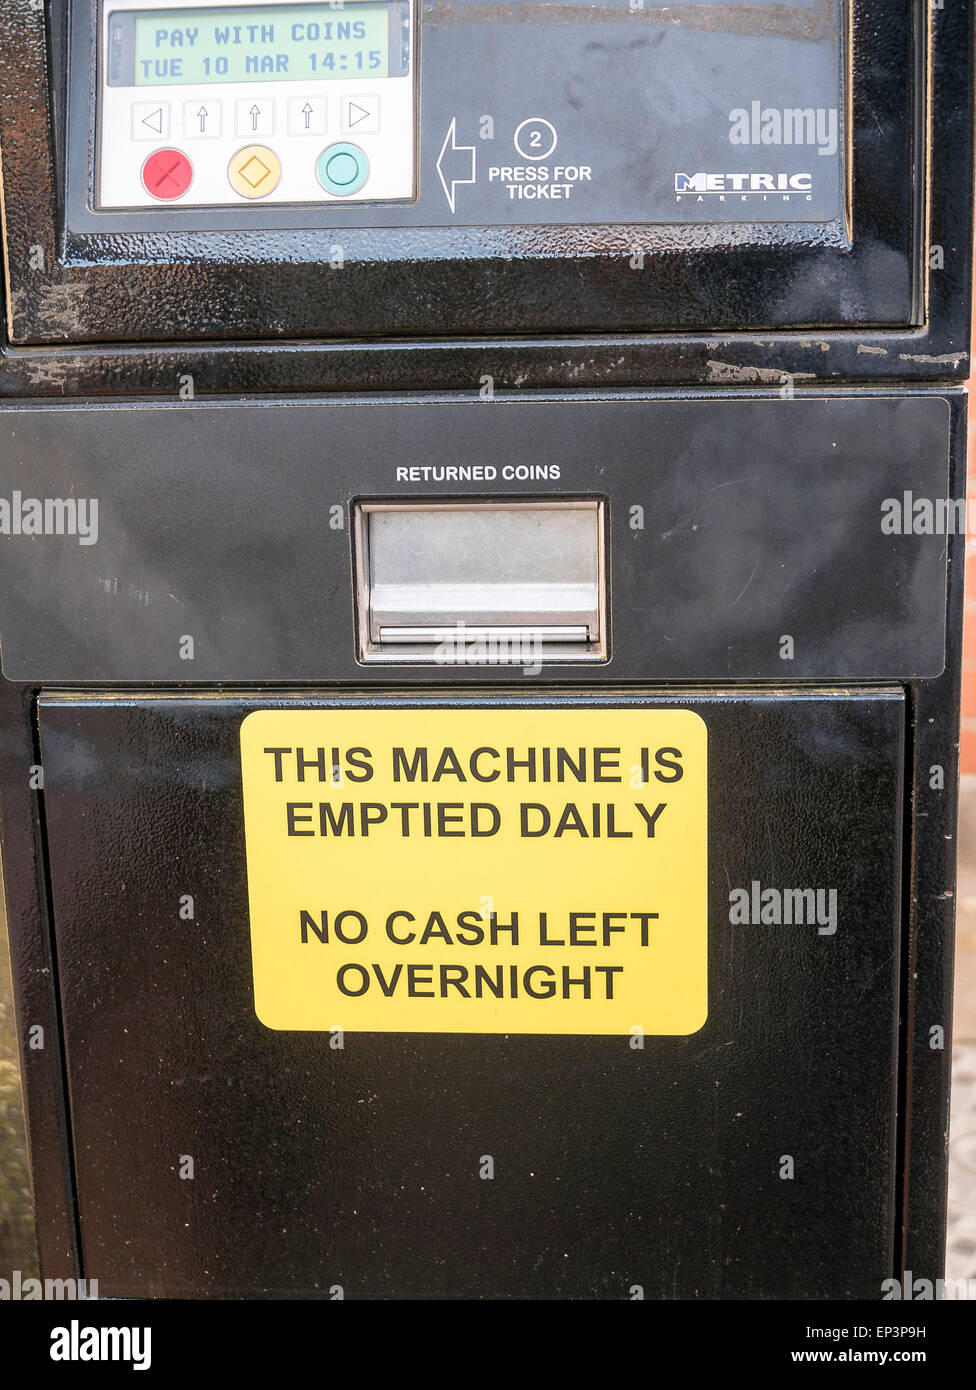 British parking meter with warning notice to prevent out-of-hours theft - Stock Image